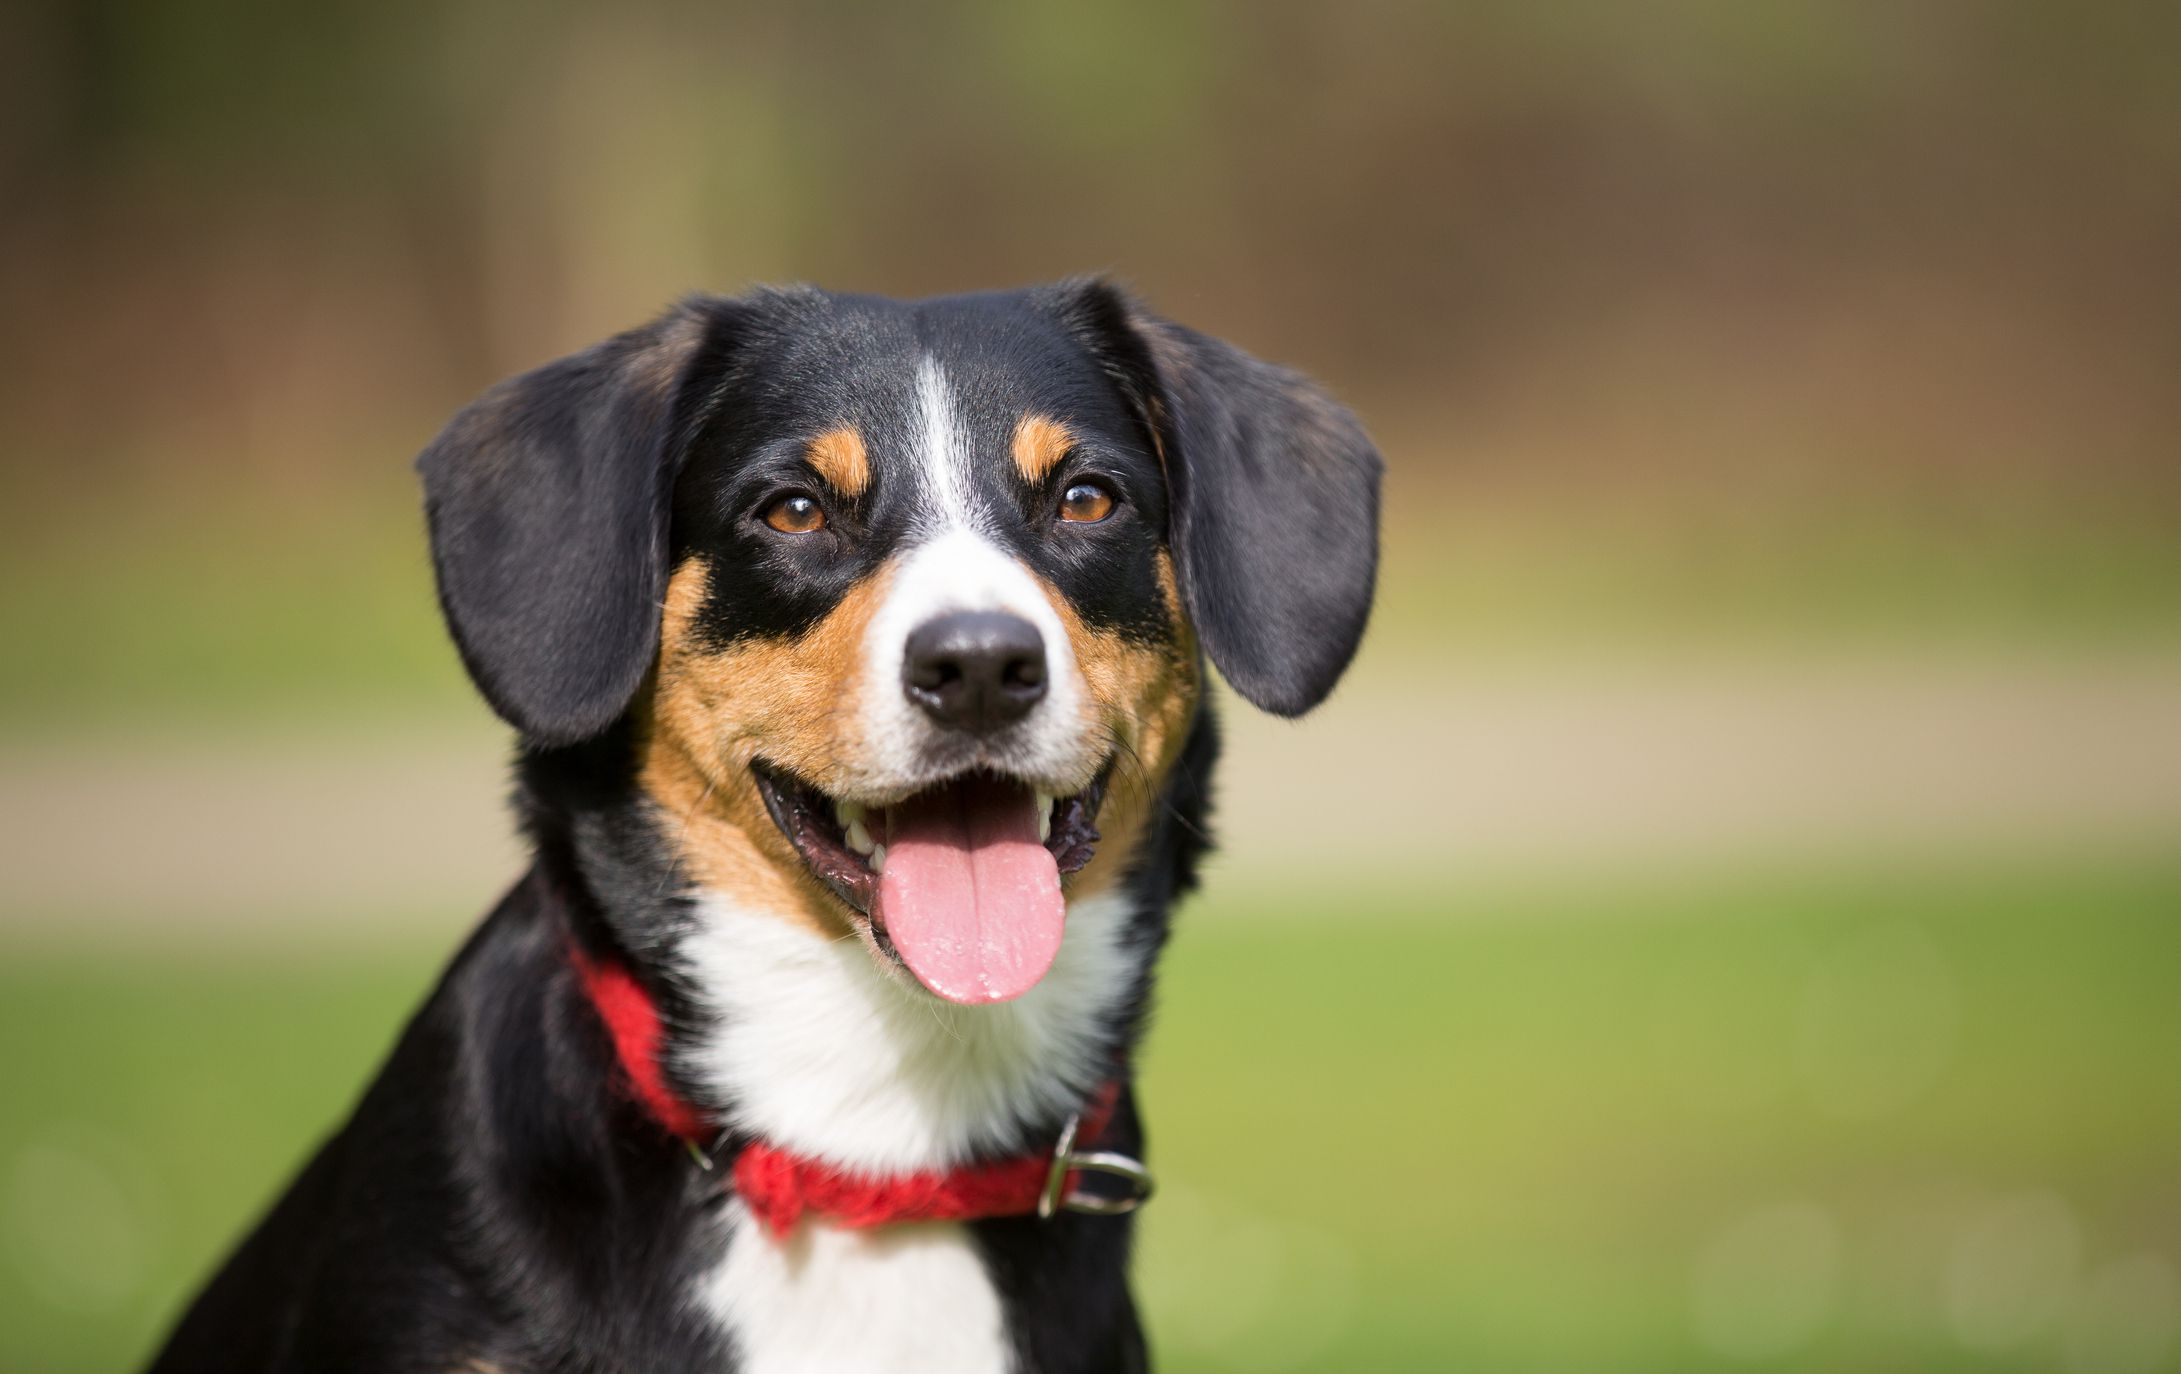 Dog Breeds News, Articles, Stories & Trends for Today